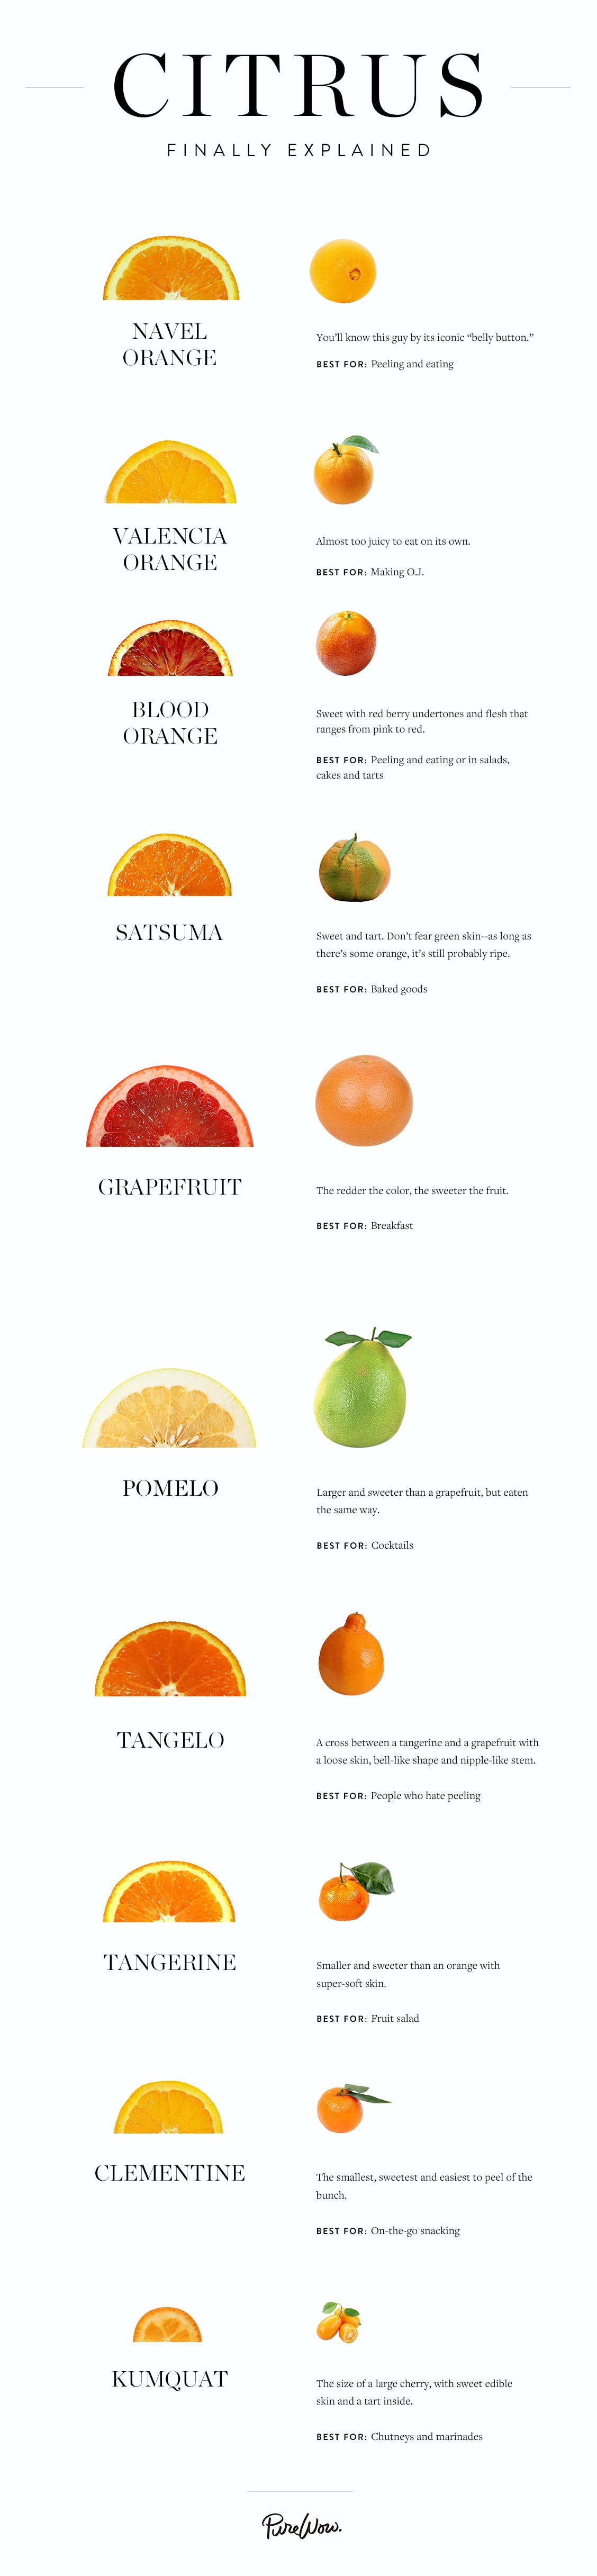 citrusinfographic copyedits